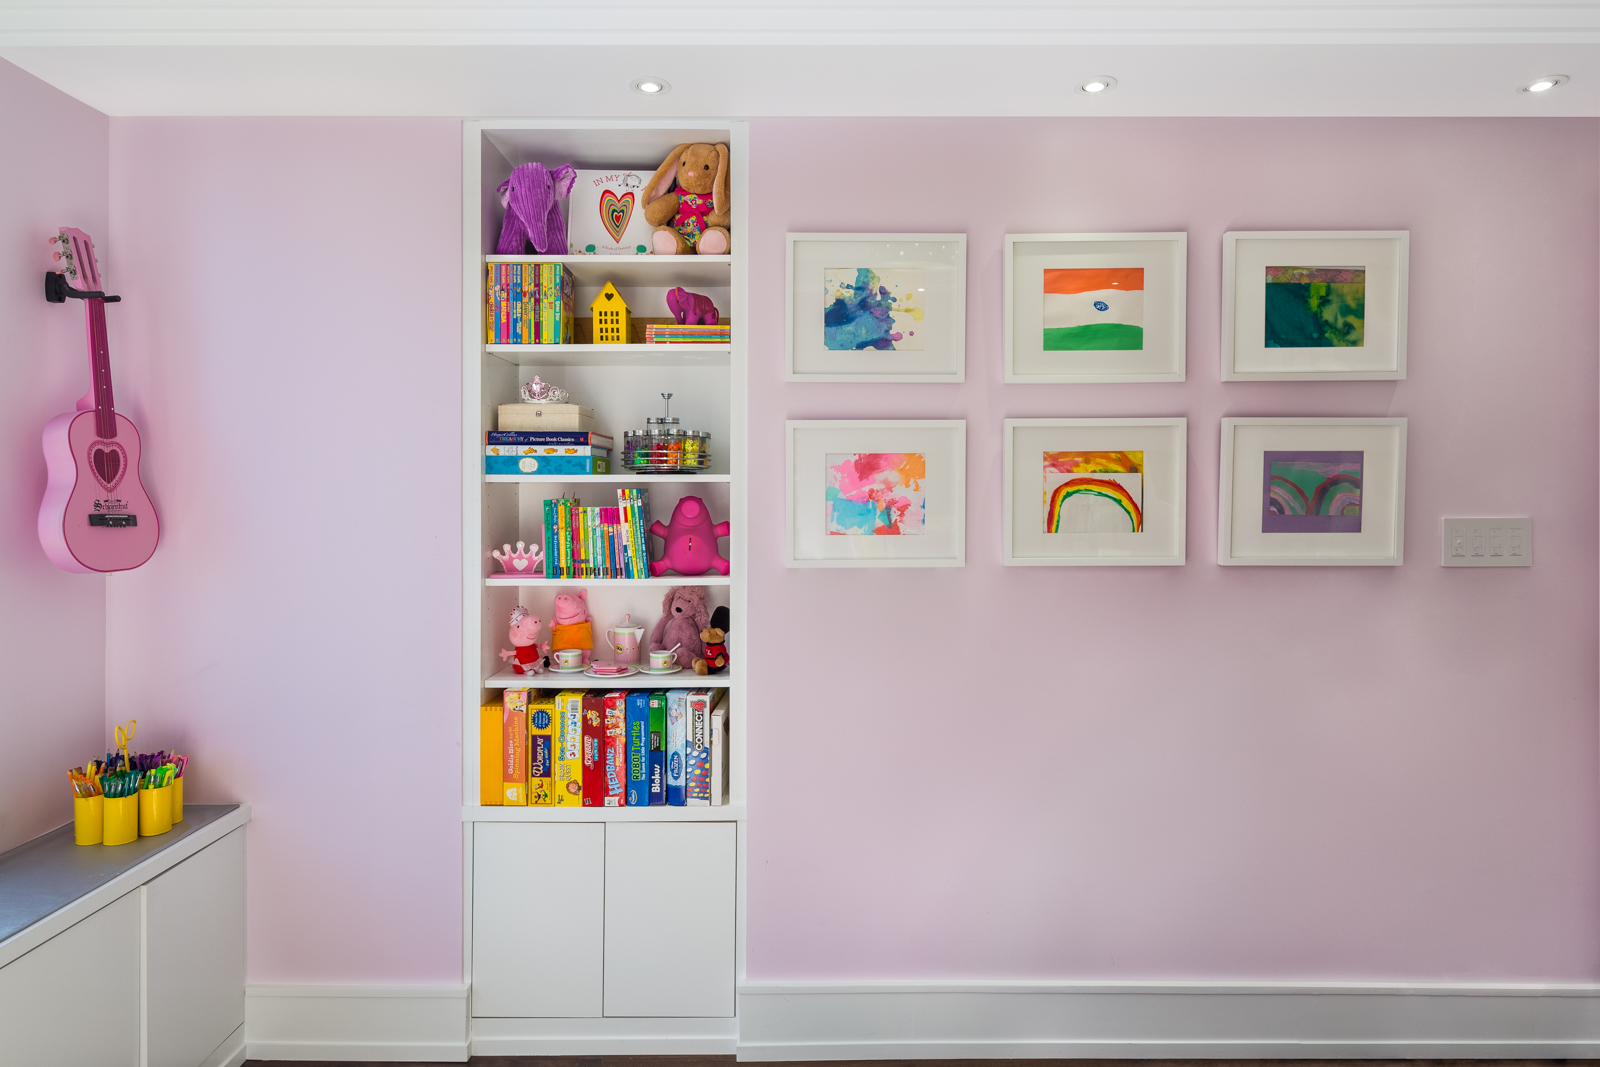 Facing the bed is the gallery wall showing artwork made by the budding artist. This of course is a rotating gallery space which can be easily updated. We designed a built in a bookcase with both open and closed storage for books, games and clutter.